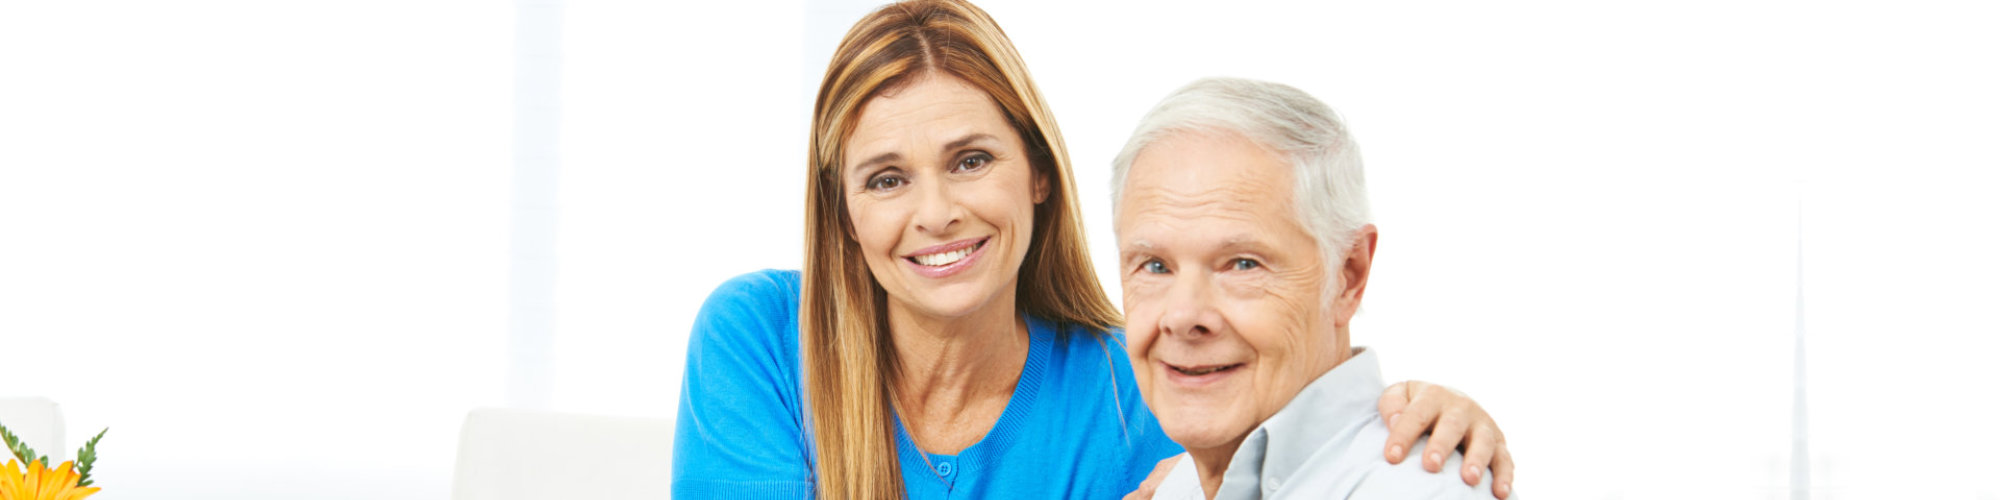 caregiver with senior smiling